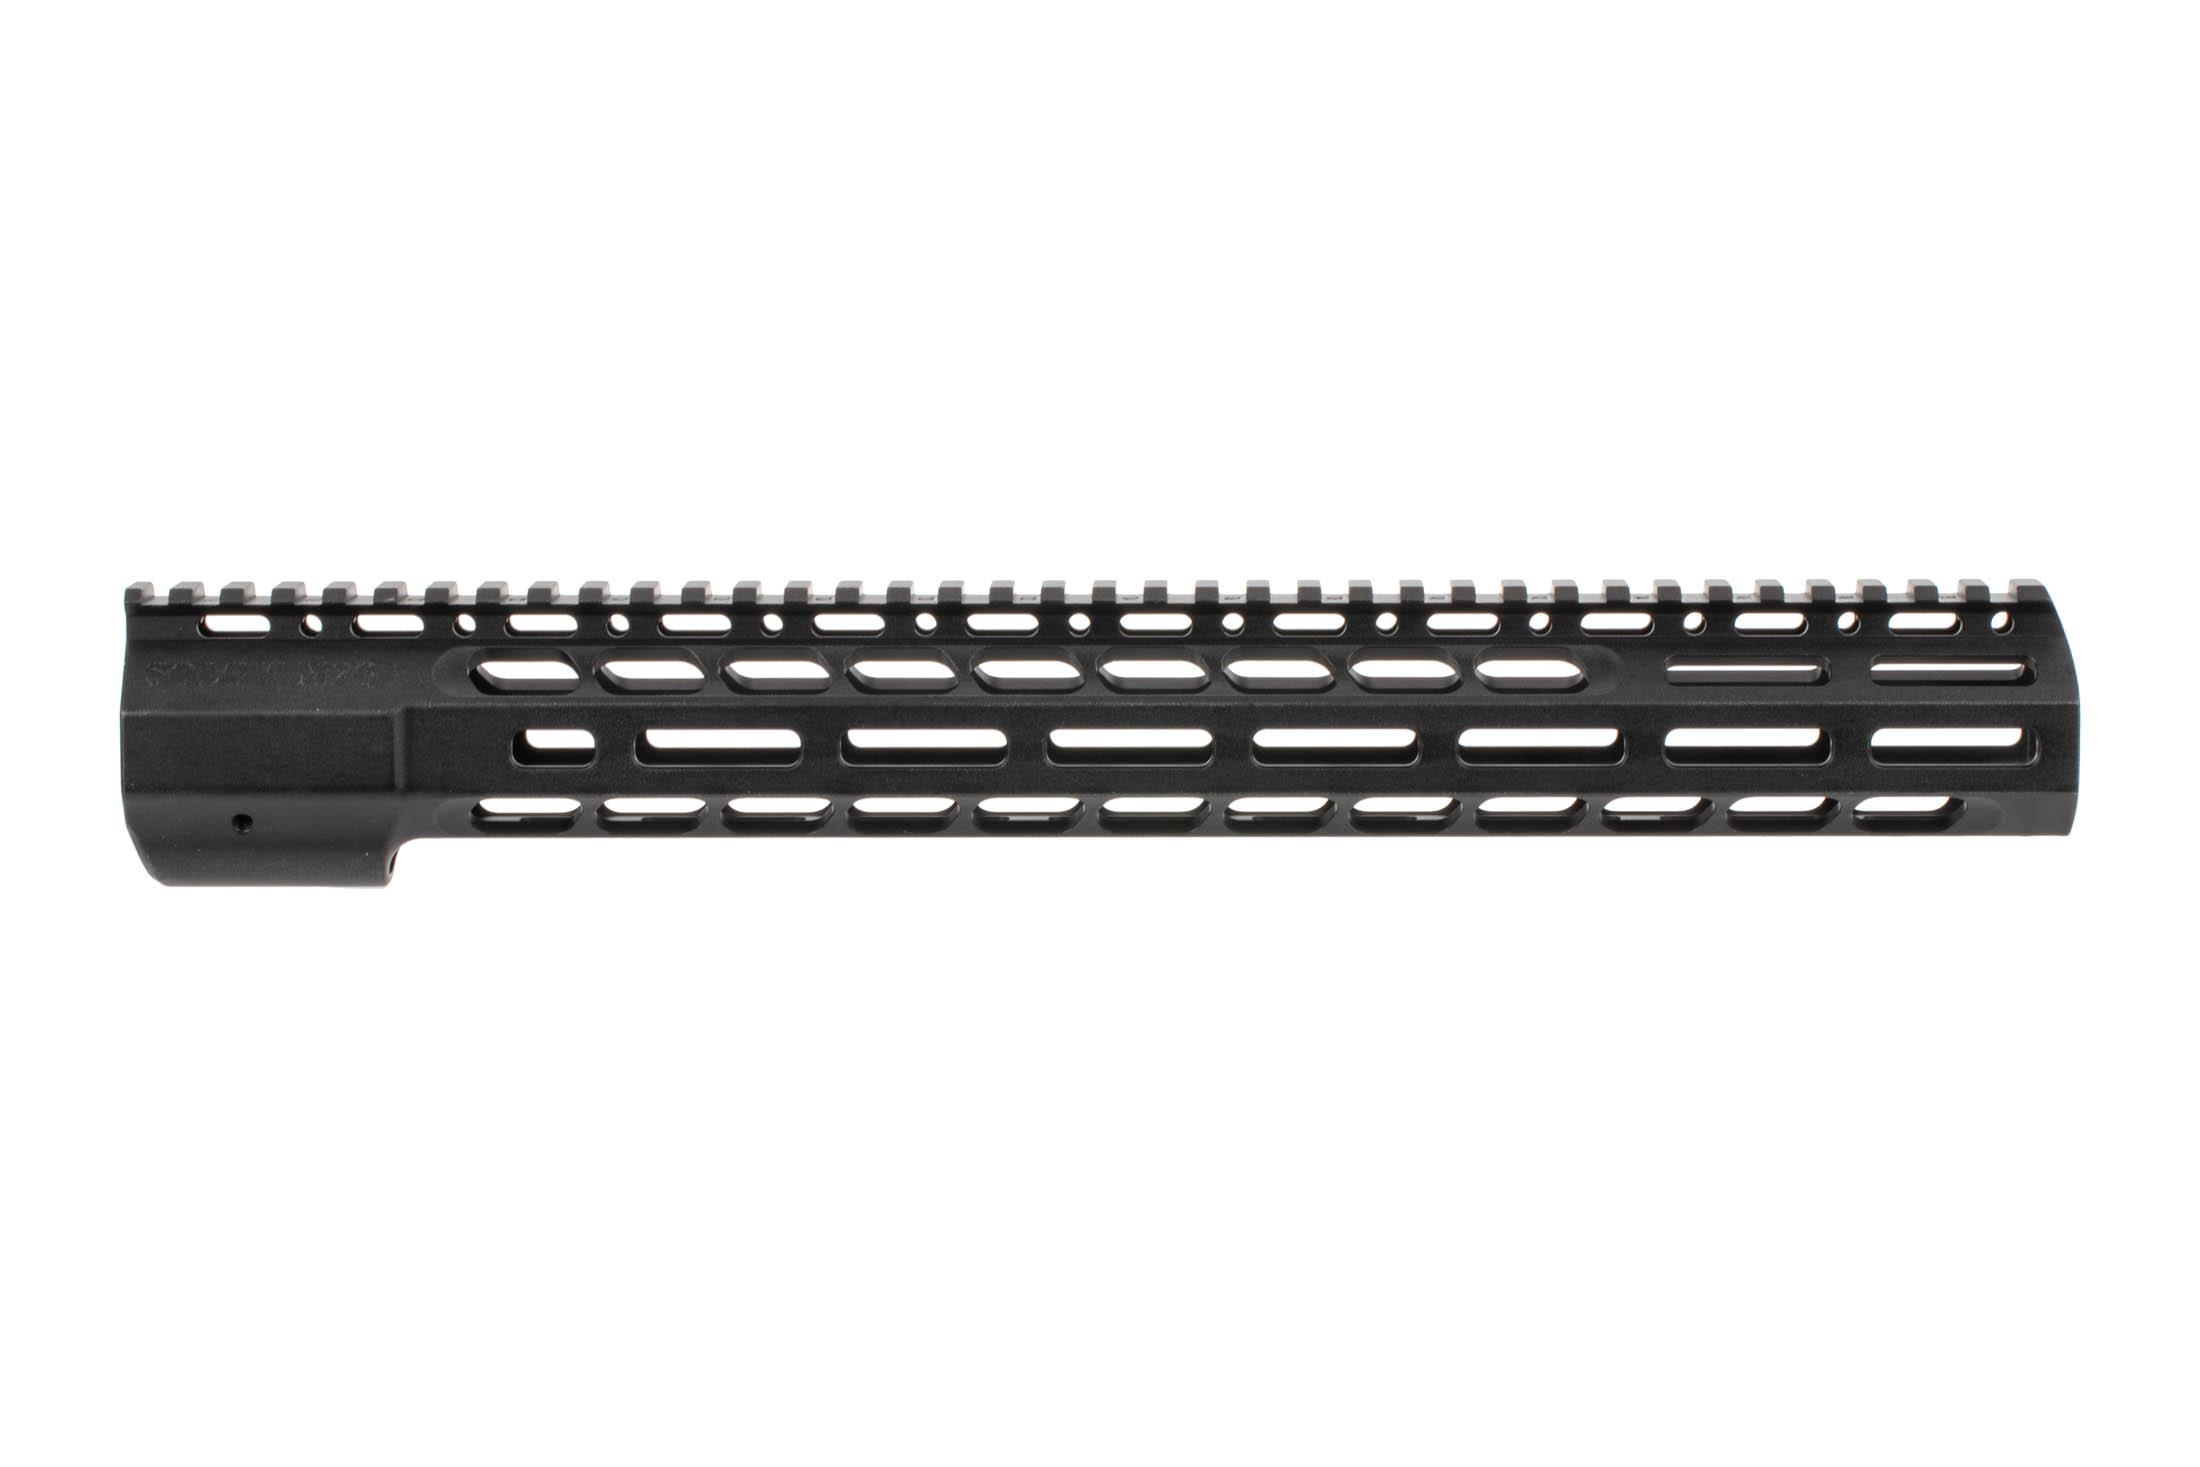 The SOLGW M76 Wedgelock 15 Handguard is machined from aluminum and features a black anodized finish